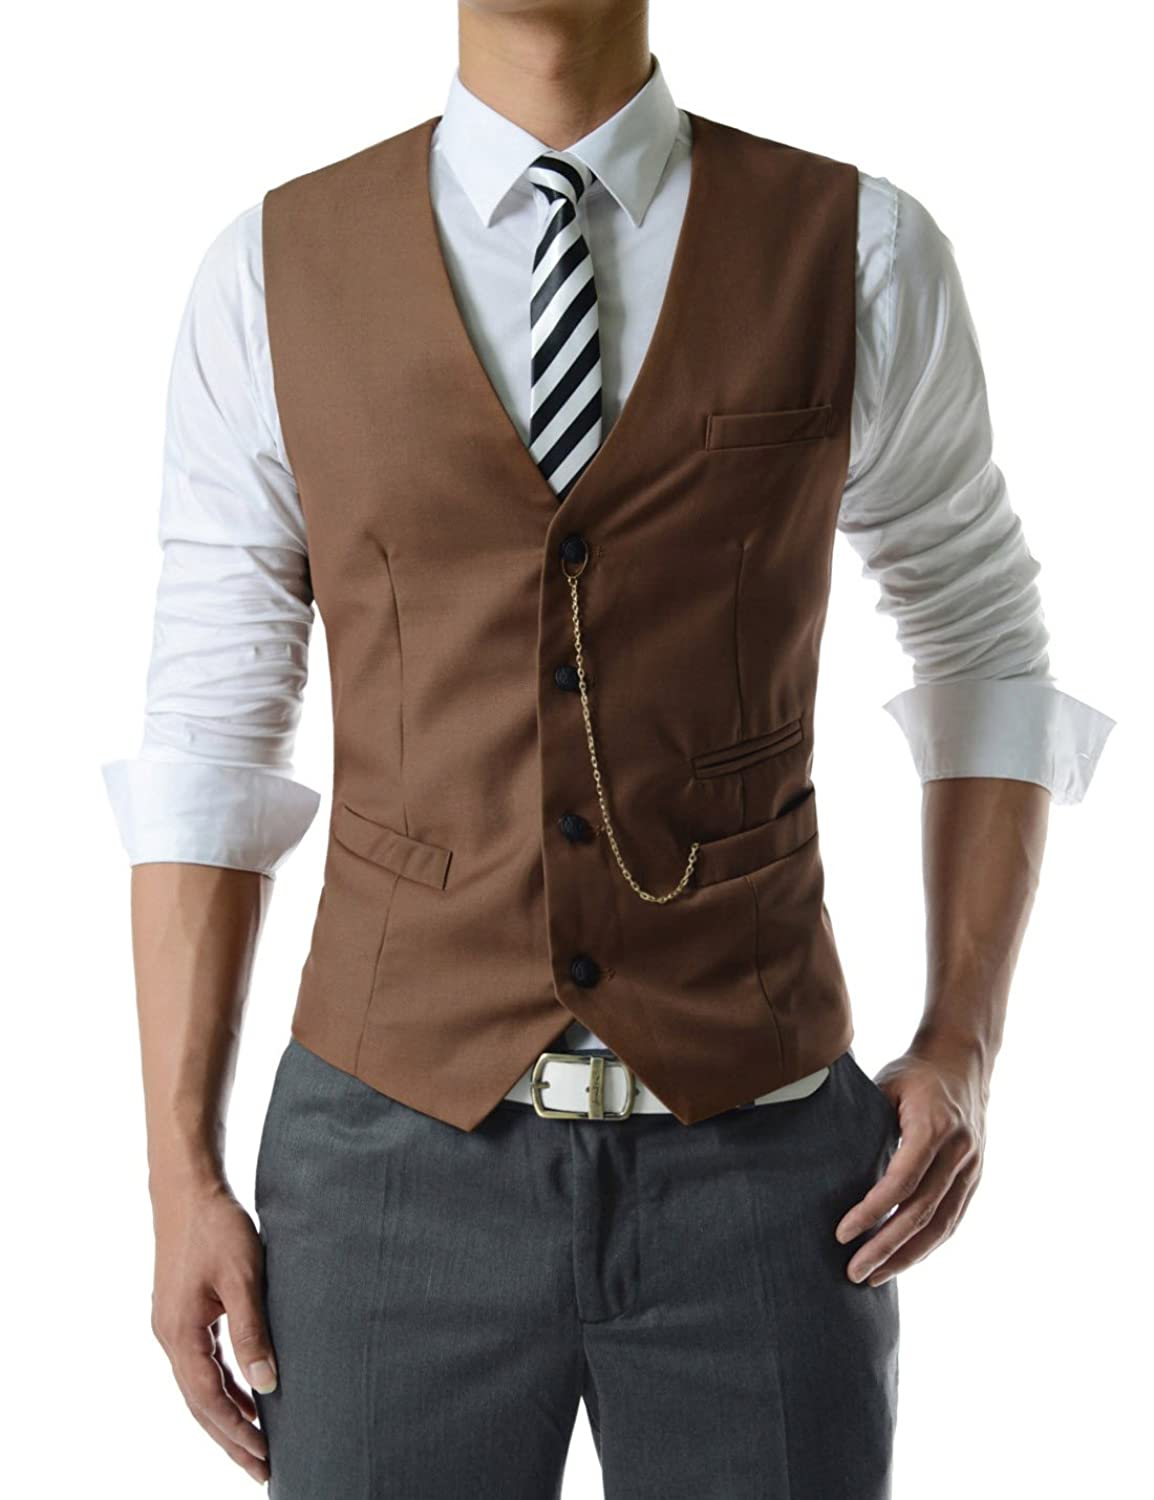 Men's Steampunk Clothing, Costumes, Fashion SVE TheLees Mens slim fit chain point 3 button vest $33.99 AT vintagedancer.com